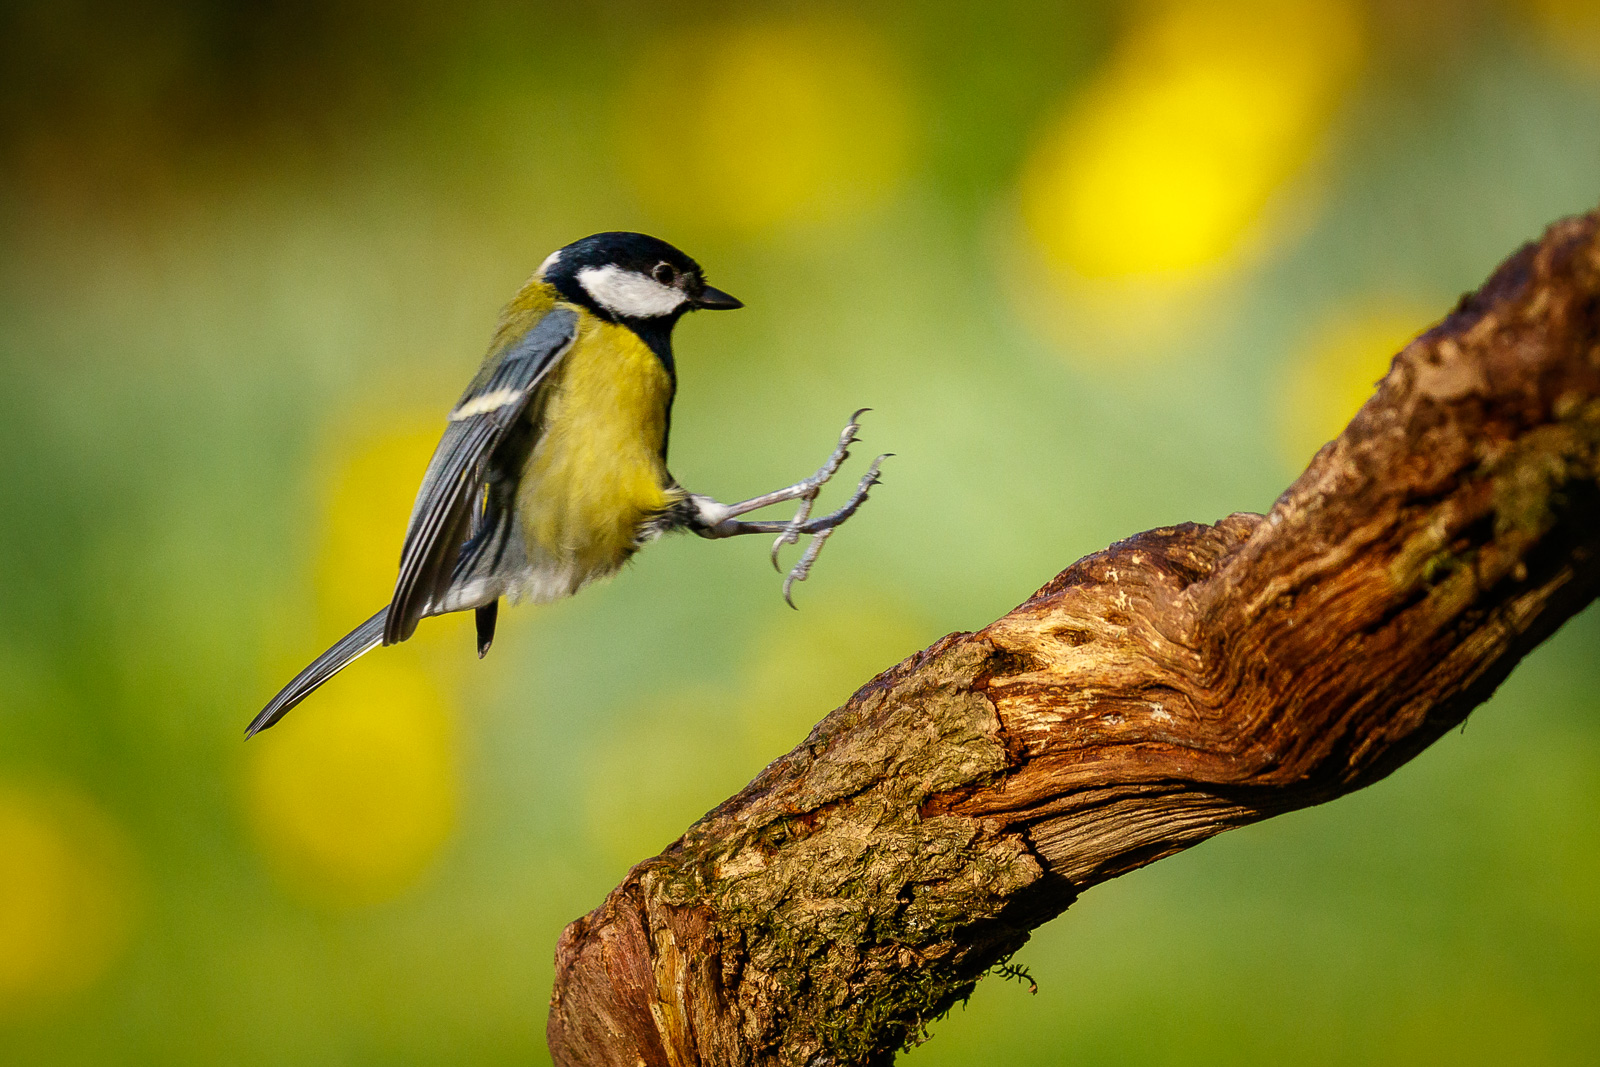 Great Tit landing